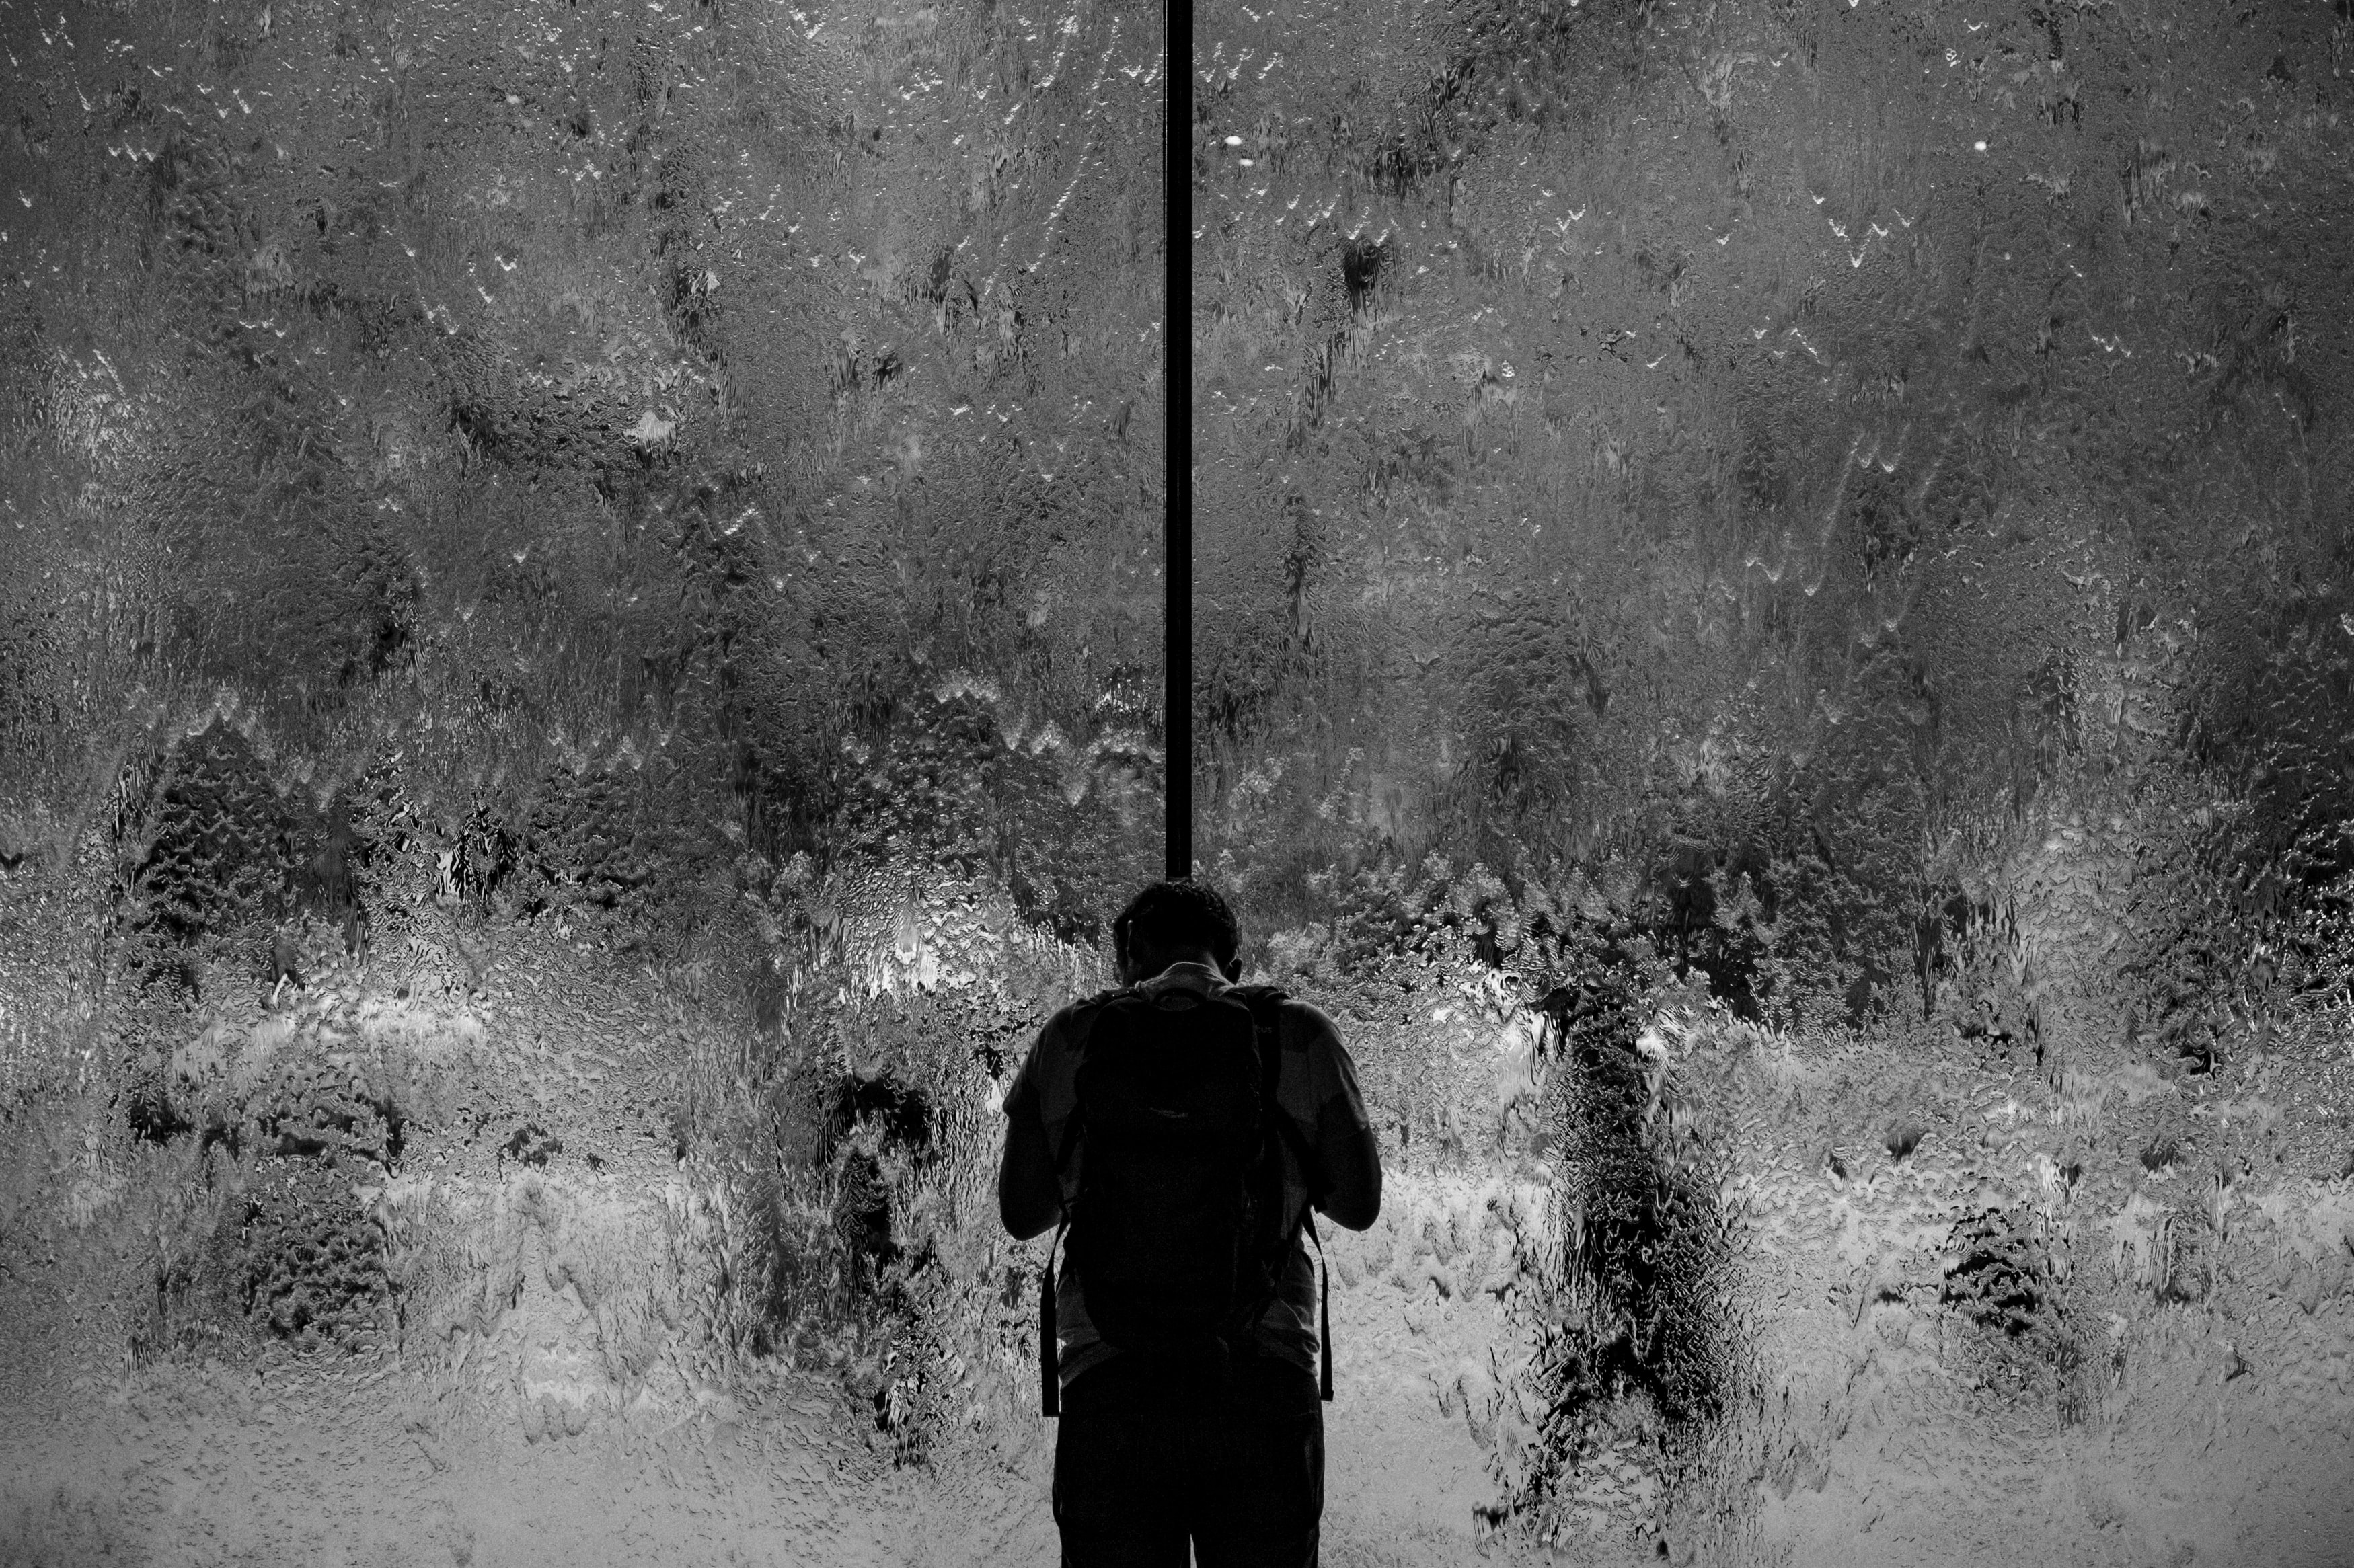 man standing on glass wall with pouring water